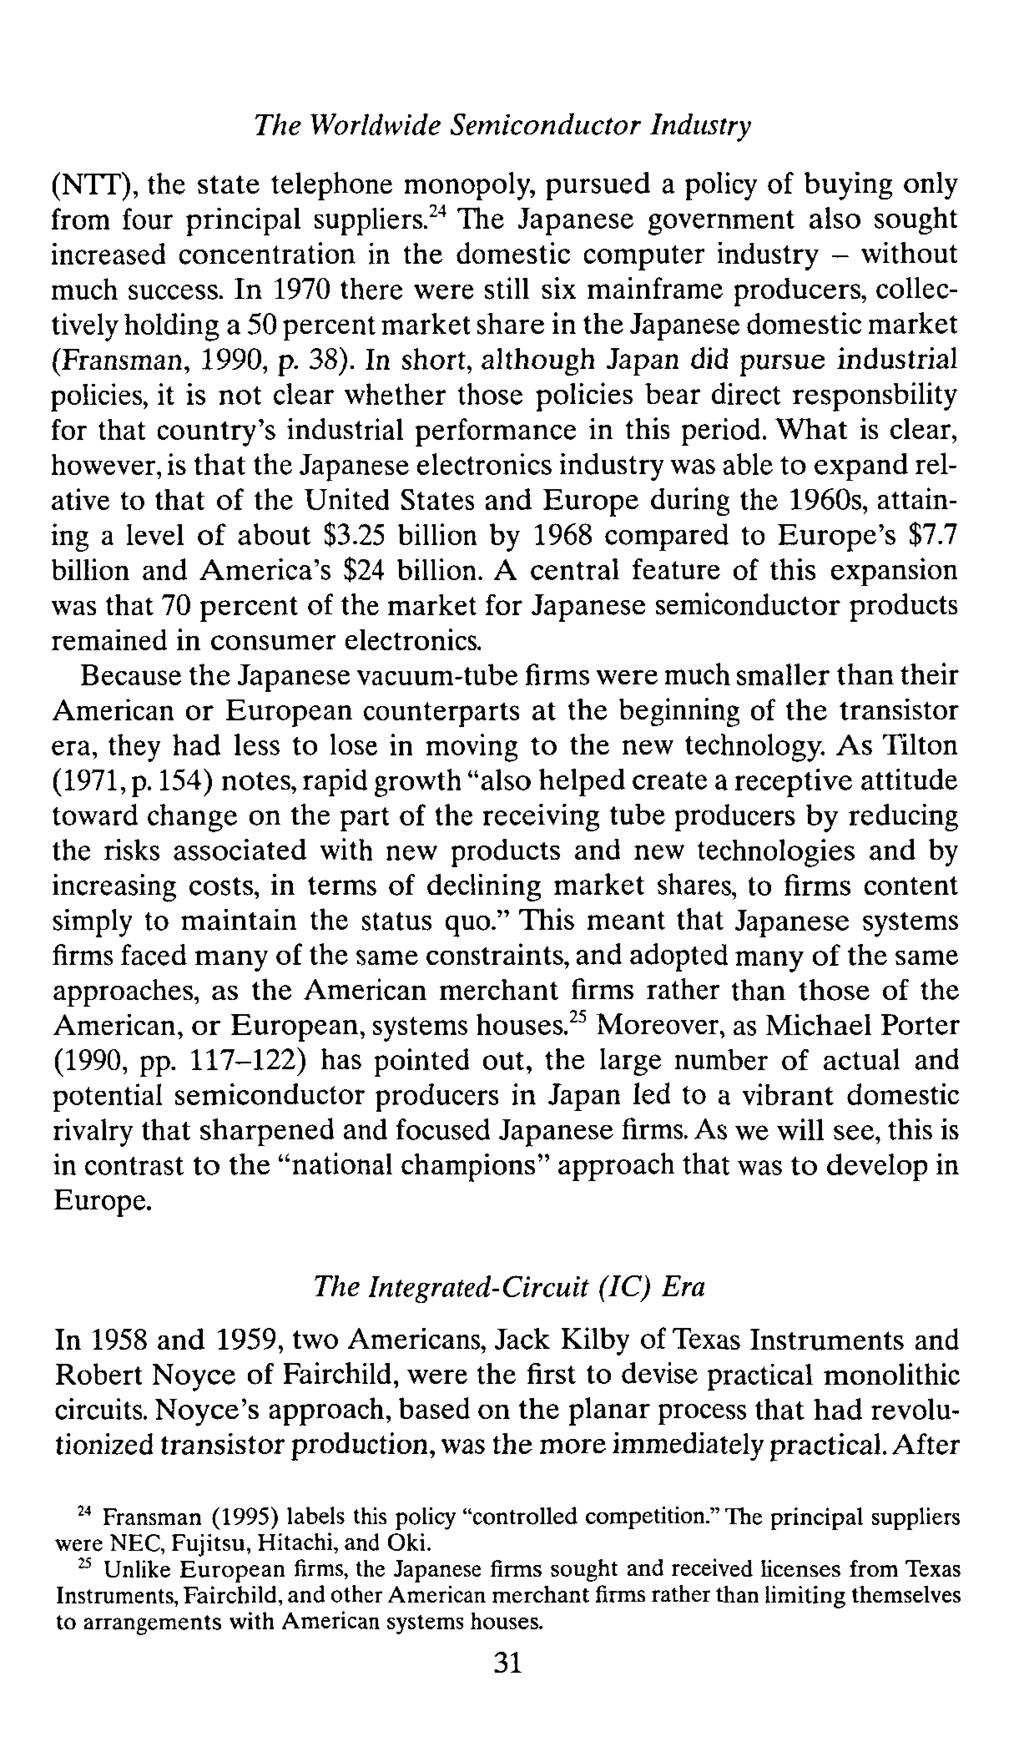 Chapter 2 The Evolution Of Competitive Advantage In Worldwide 1959 Practical Monolithic Integrated Circuit Concept Patented Semiconductor Industry Nit State Telephone Monopoly Pursued A Policy